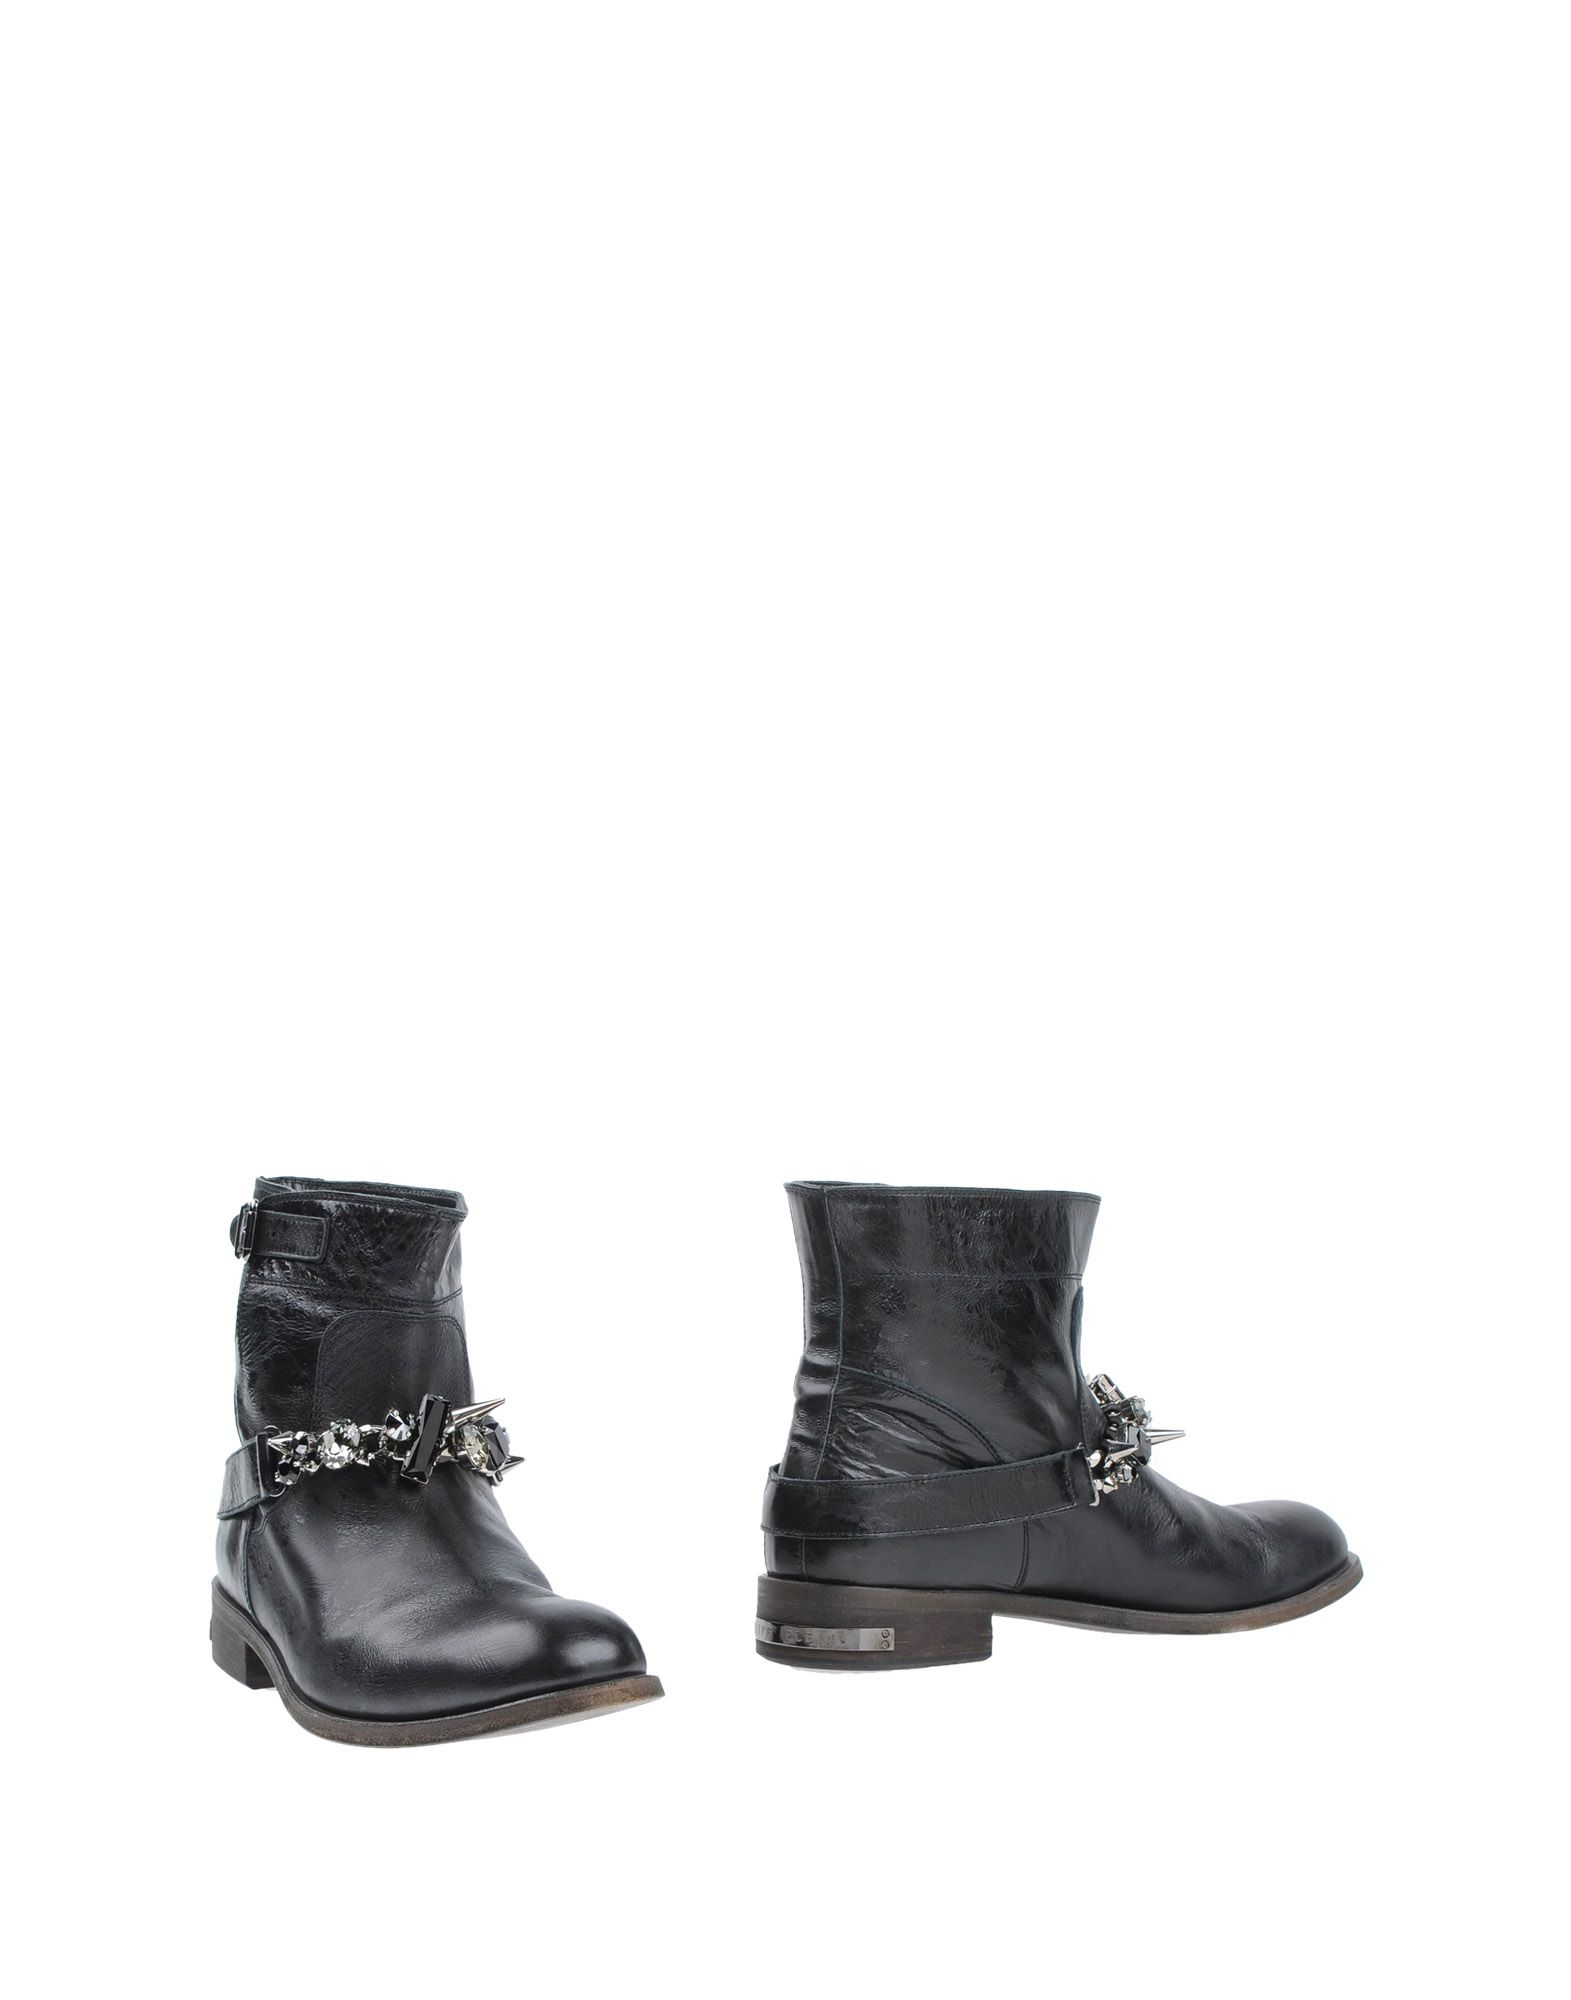 SOLD OUT         Stivaletti Philipp Plein Donna - Acquista online su